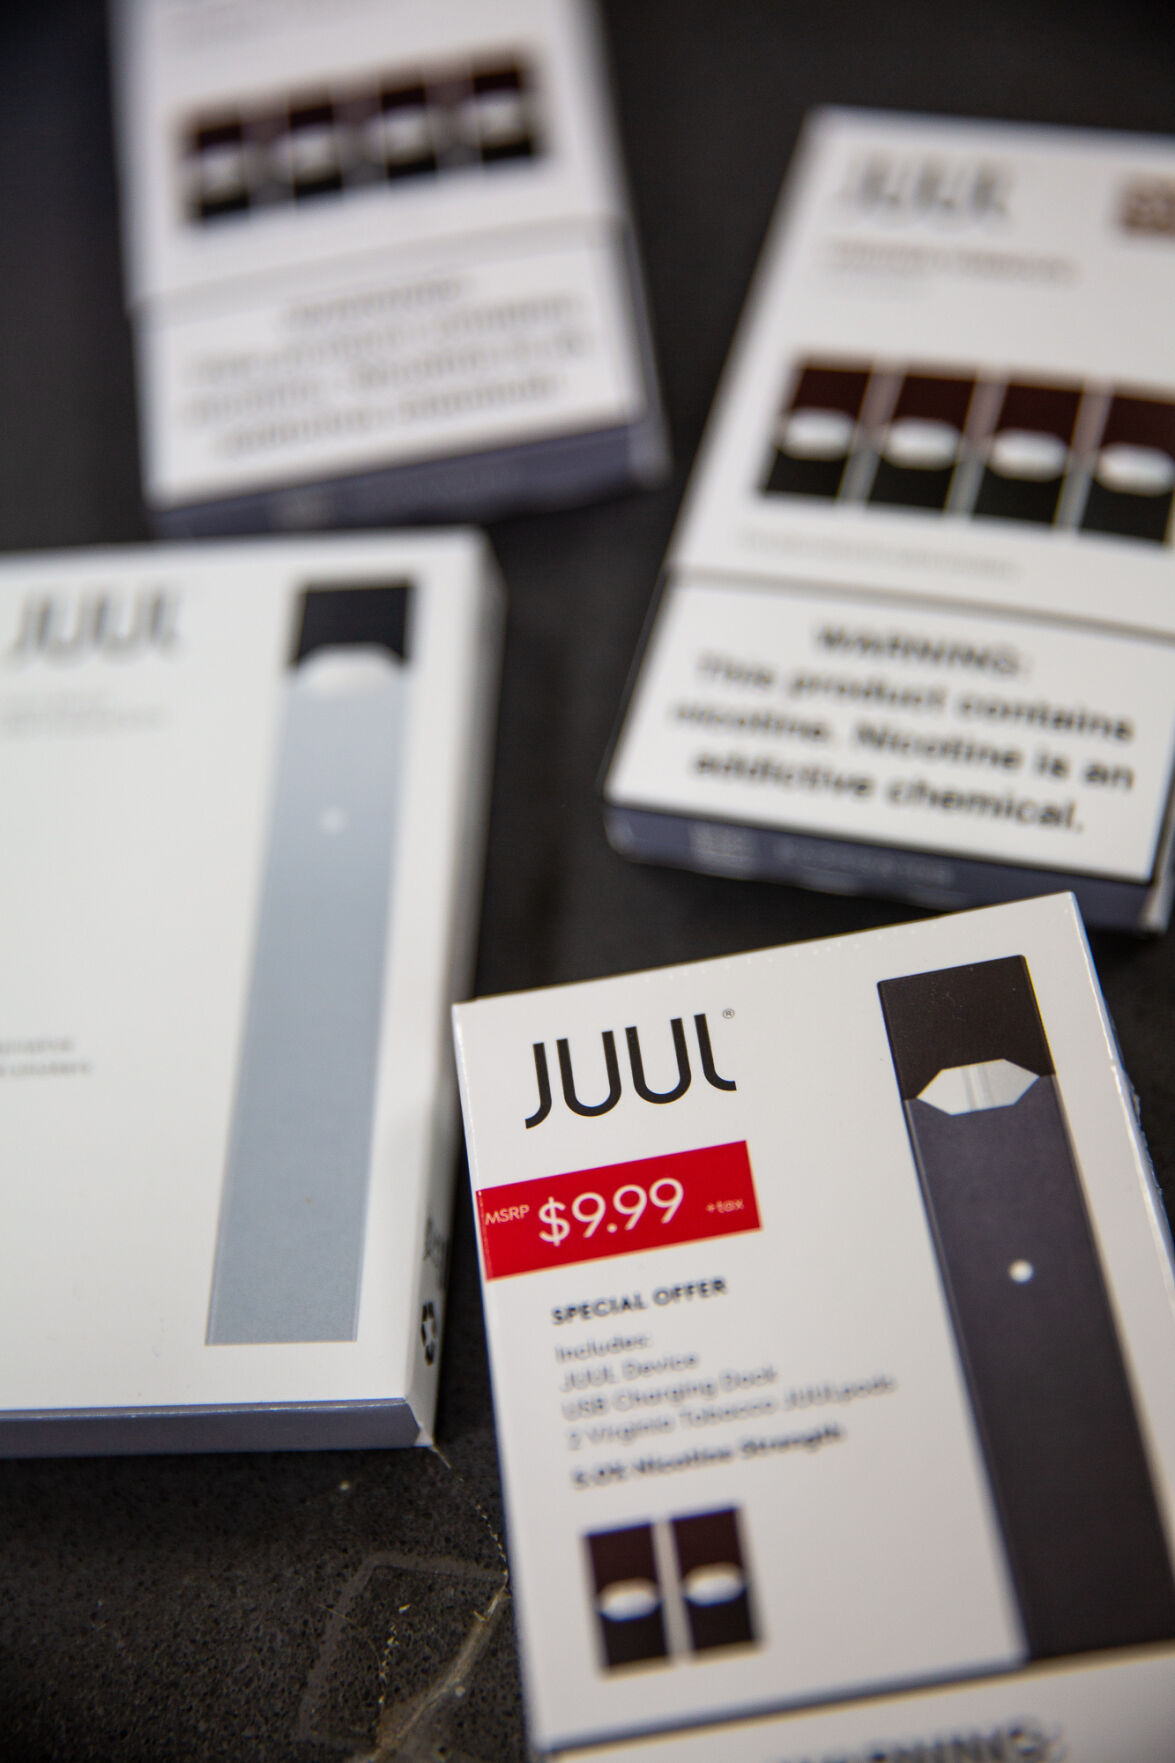 North country districts join JUUL lawsuit